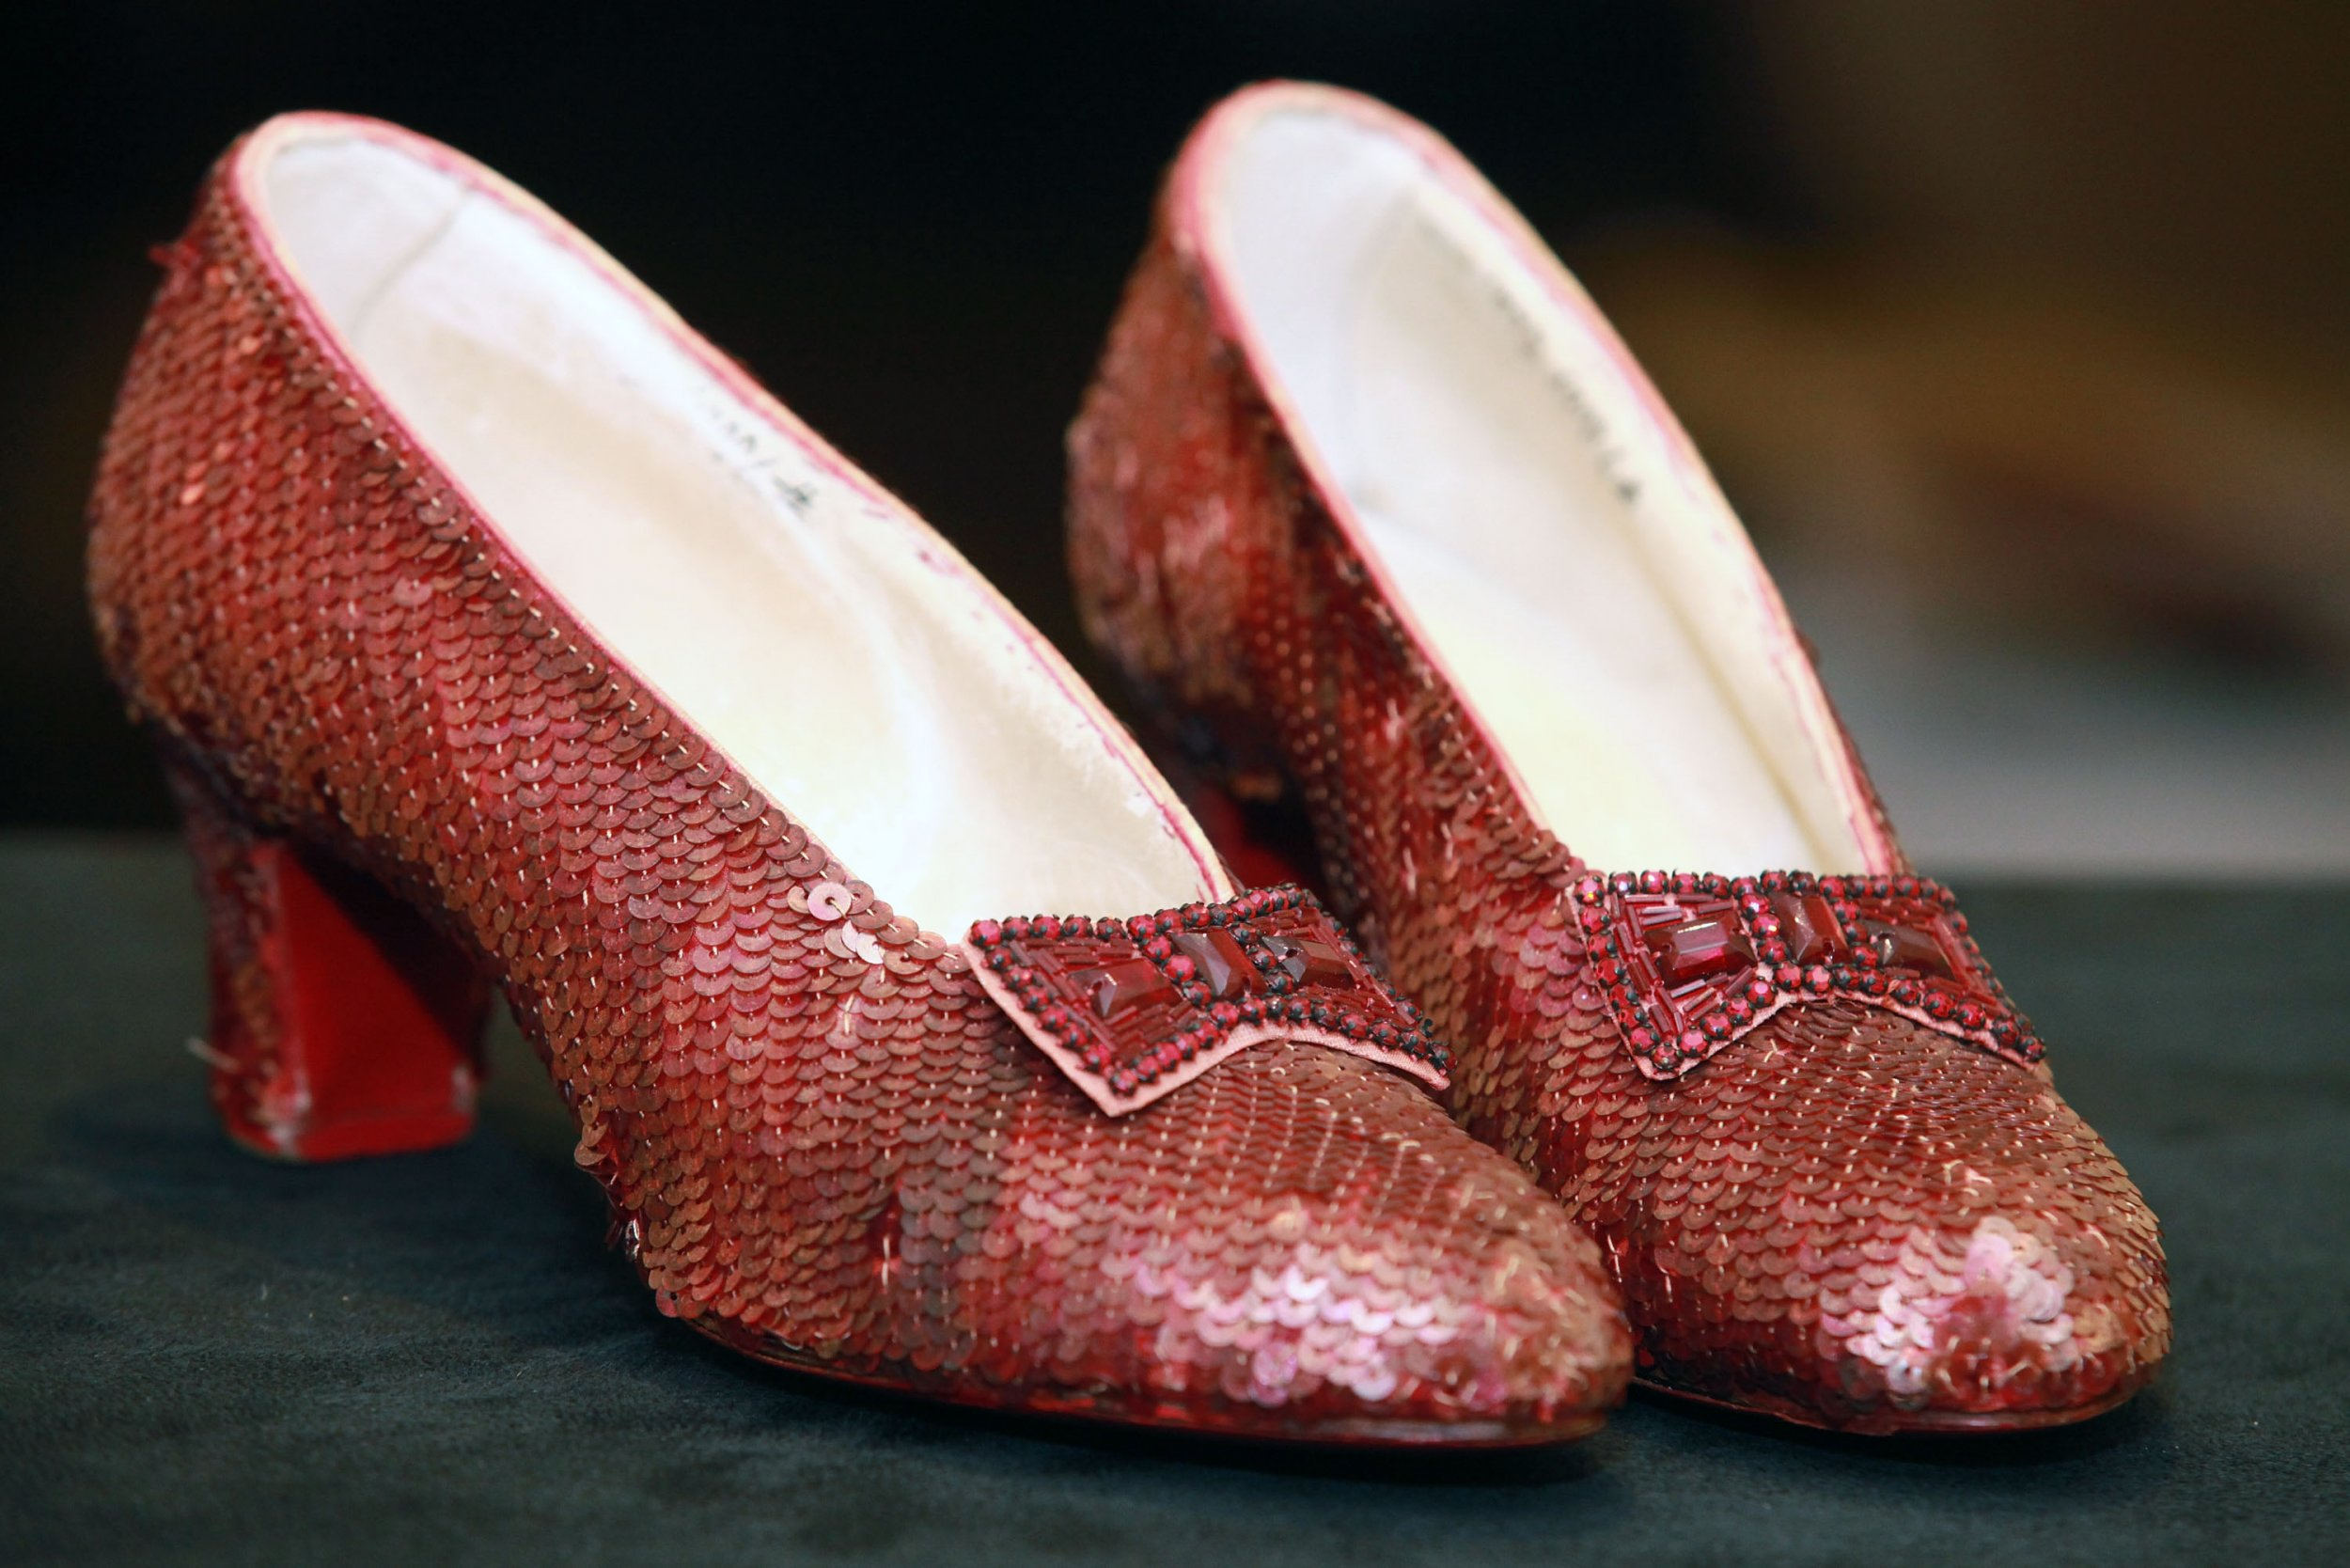 kno dorothys ruby slippers - HD2500×1668